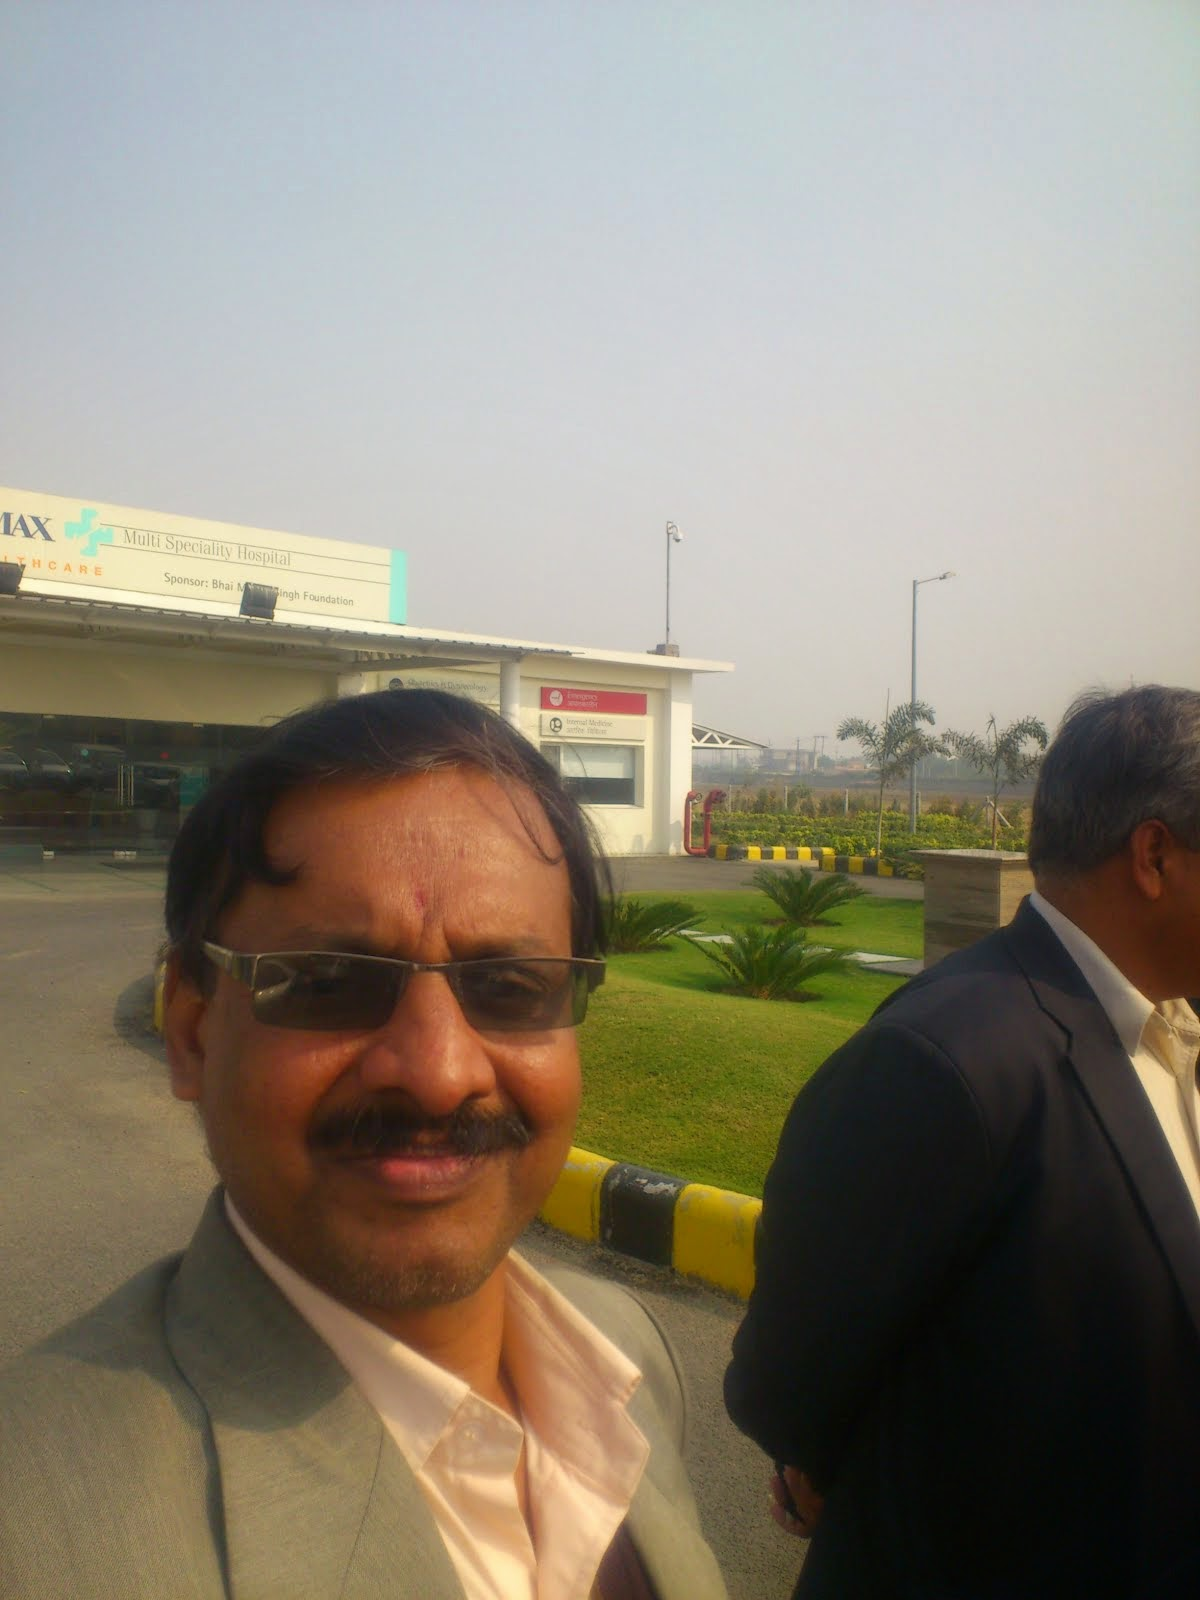 At MAX-NCR-NEW DELHI